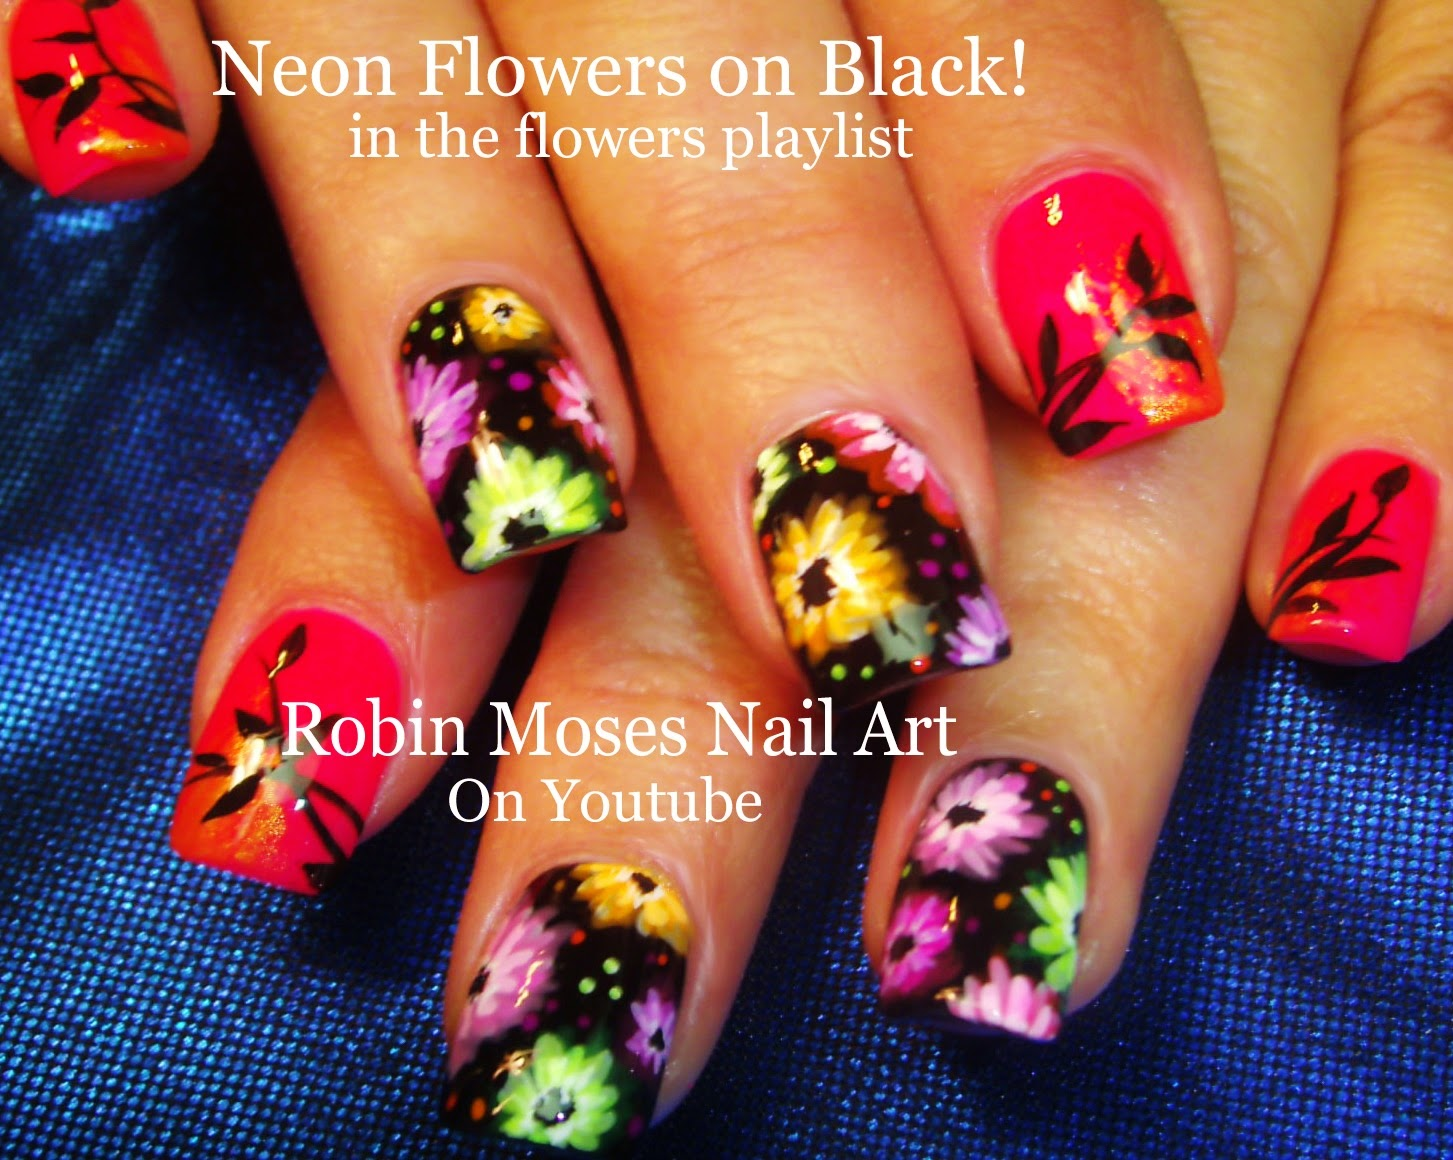 Robin moses nail art neon flower nail art to brighten up your day neon flower nail art to brighten up your day learn how to diy in the tutorial below prinsesfo Images